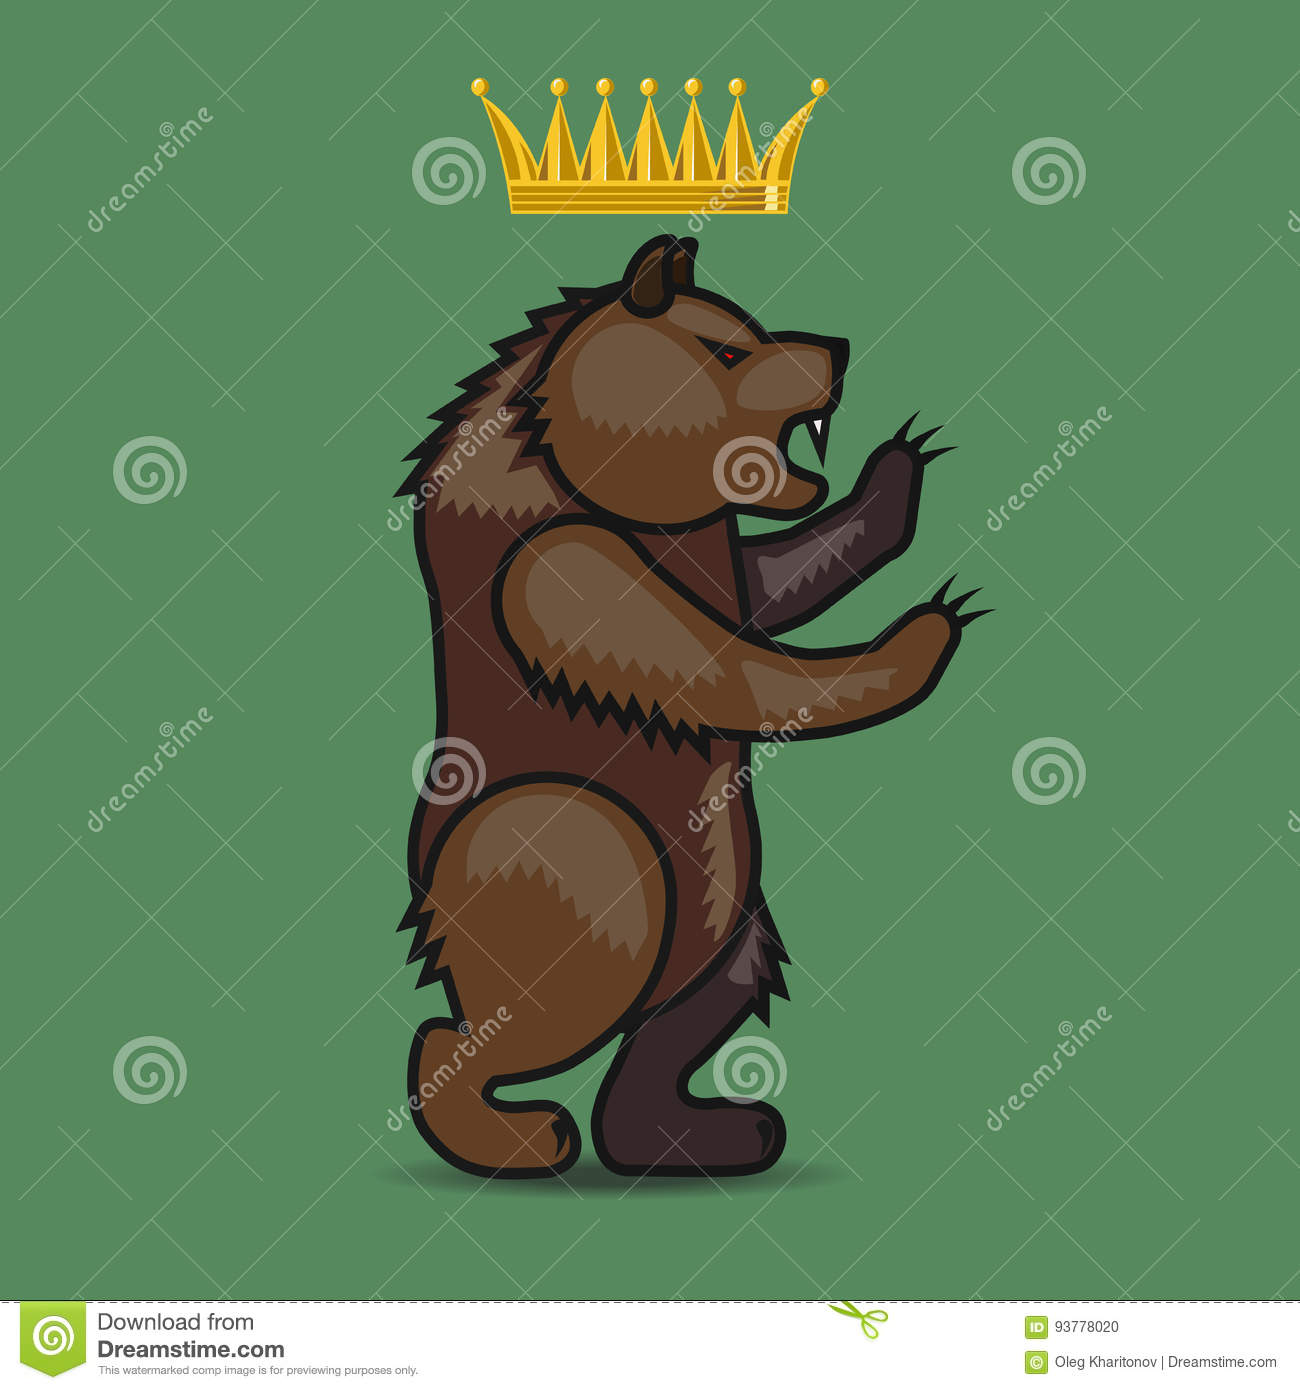 Coat of arms with a bear